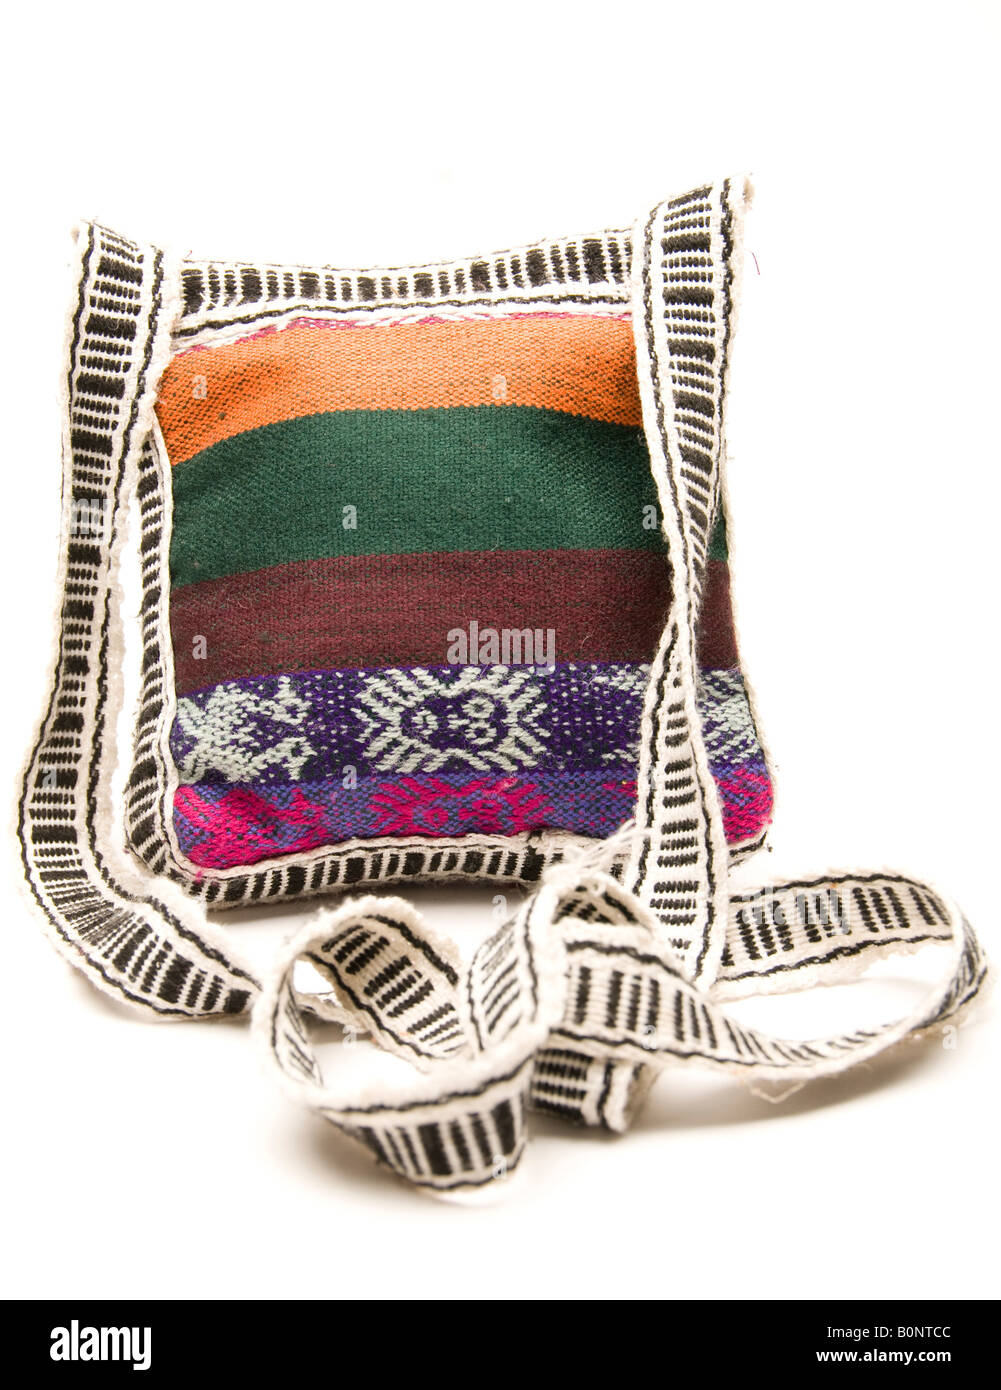 knitted hand made change purse handbag passport holder carry all produced in honduras central america Stock Photo